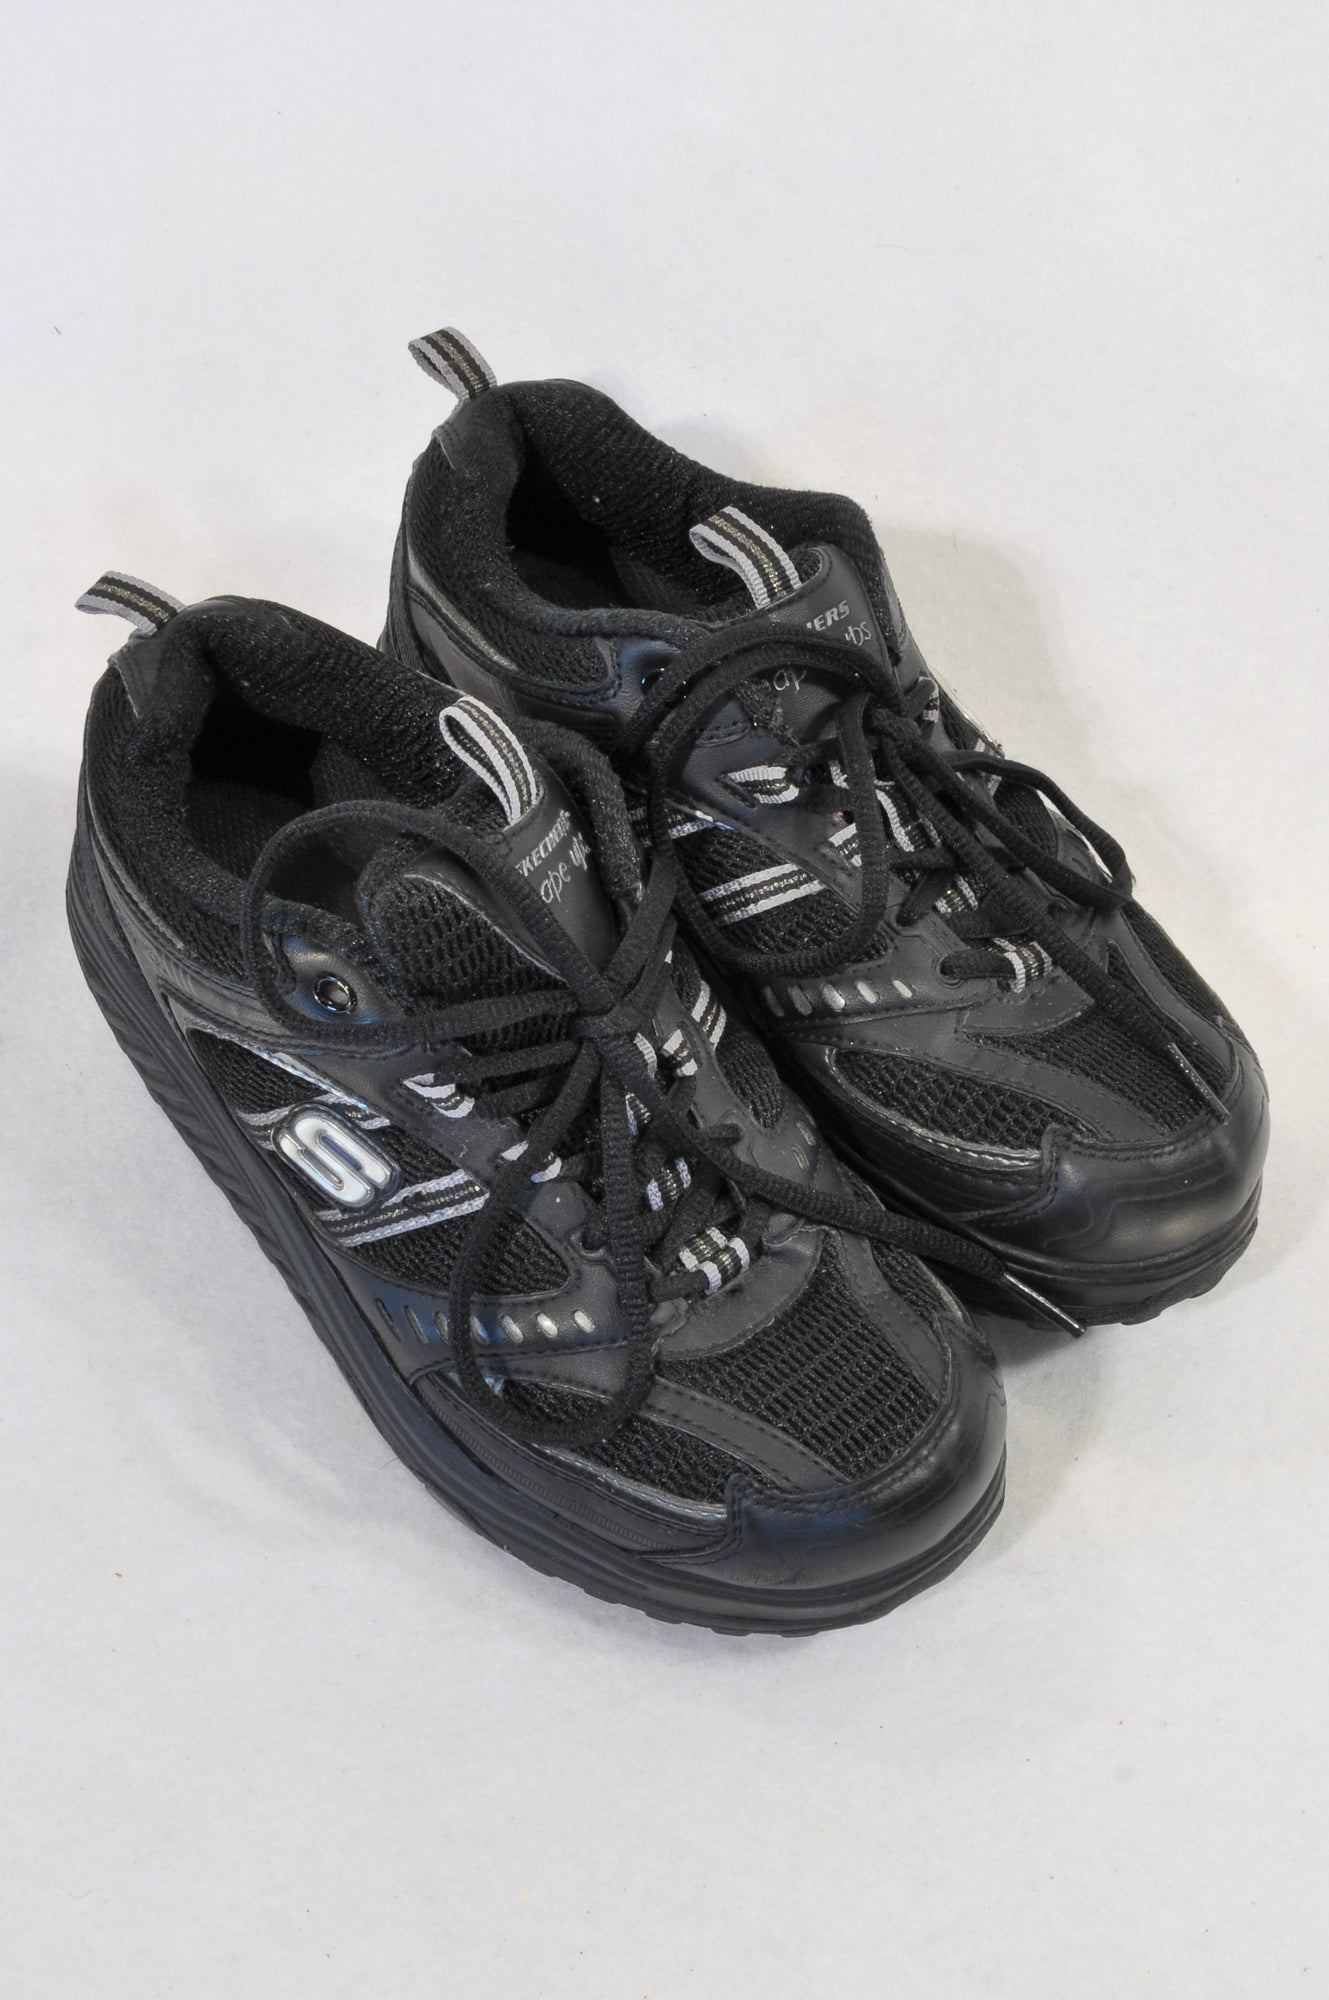 Skechers Size Y3 Black Shape Up Shoes Girls 7-16 years